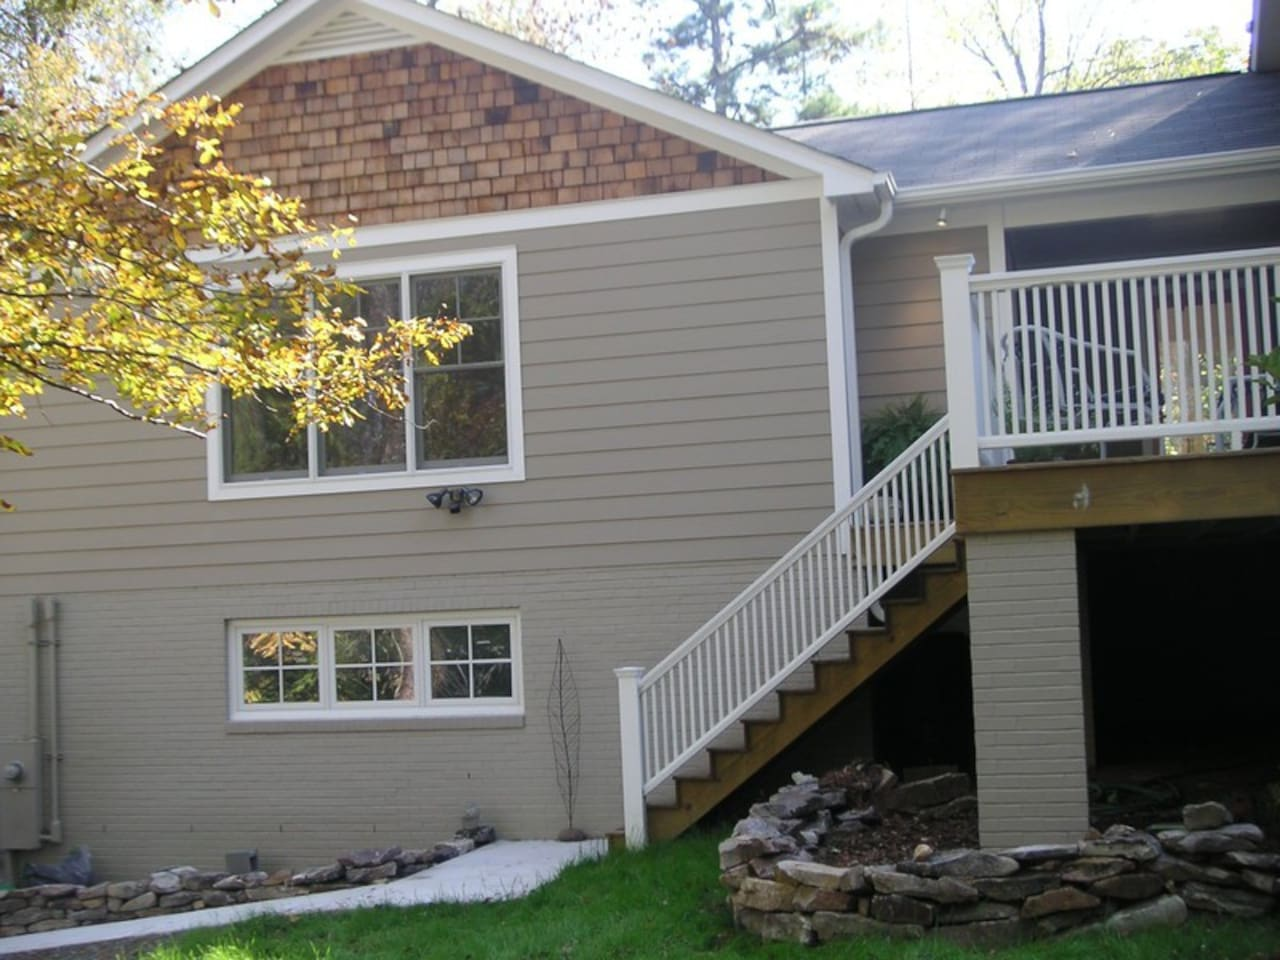 Large picture windows overlook wooded front yard. Park your car right at your entry steps.